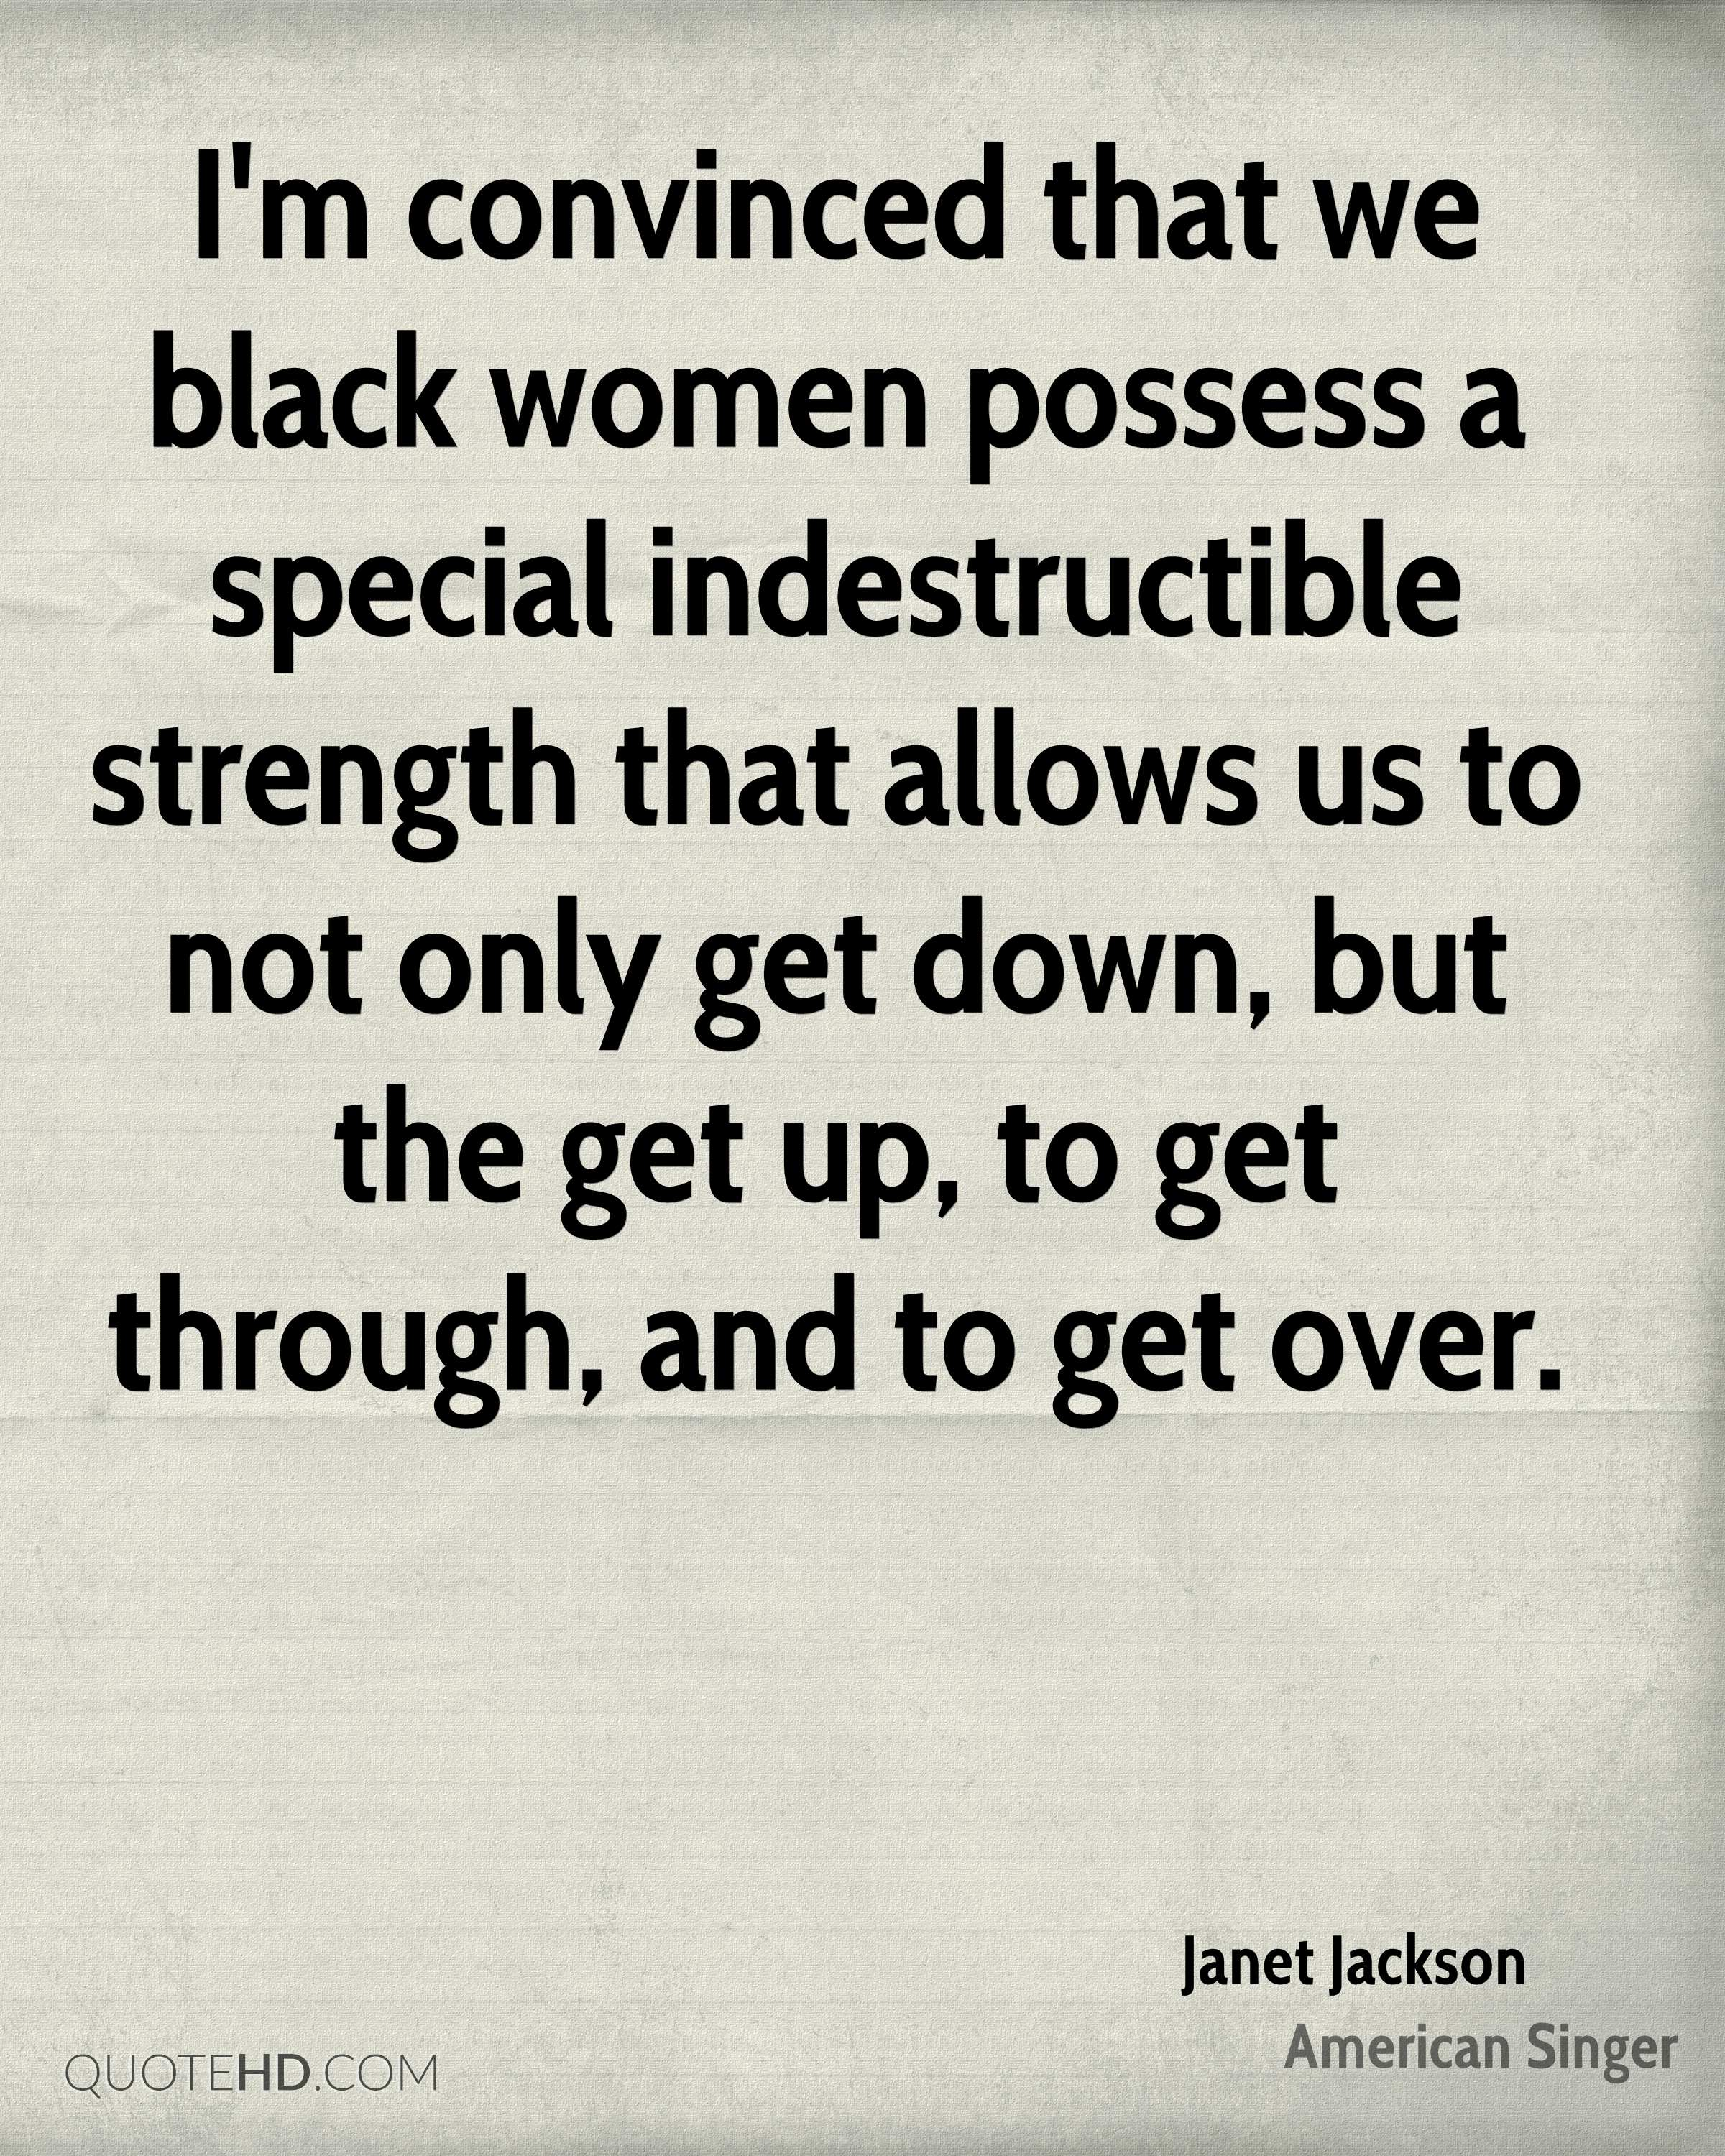 I'm convinced that we black women possess a special indestructible strength that allows us to not only get down, but the get up, to get through, and to get over.